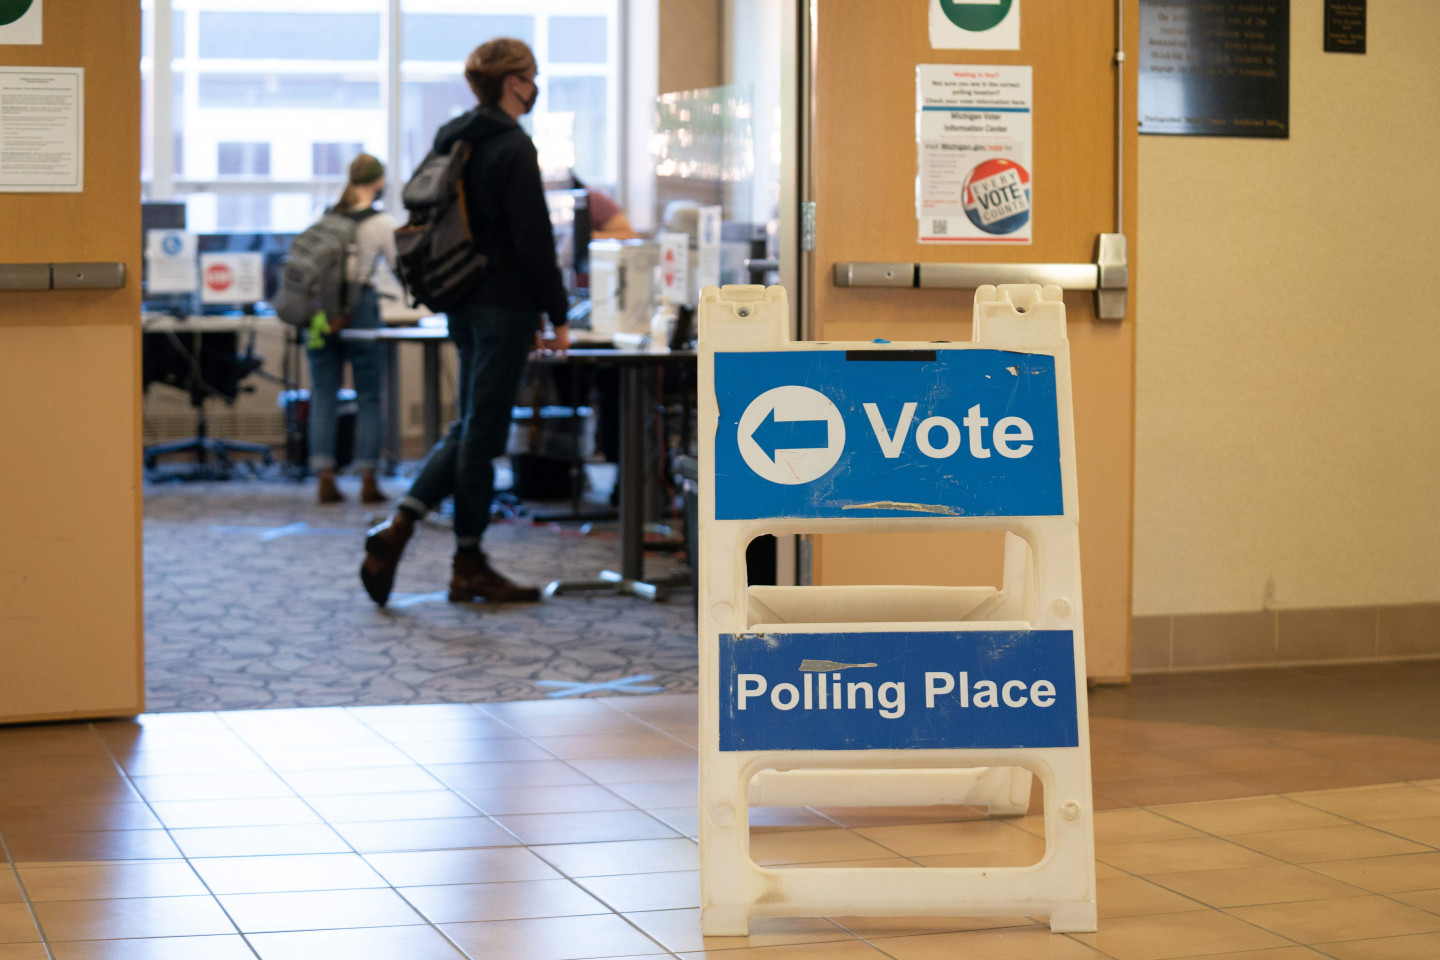 A polling place sign sits outside of a room in the Bernhard Center.